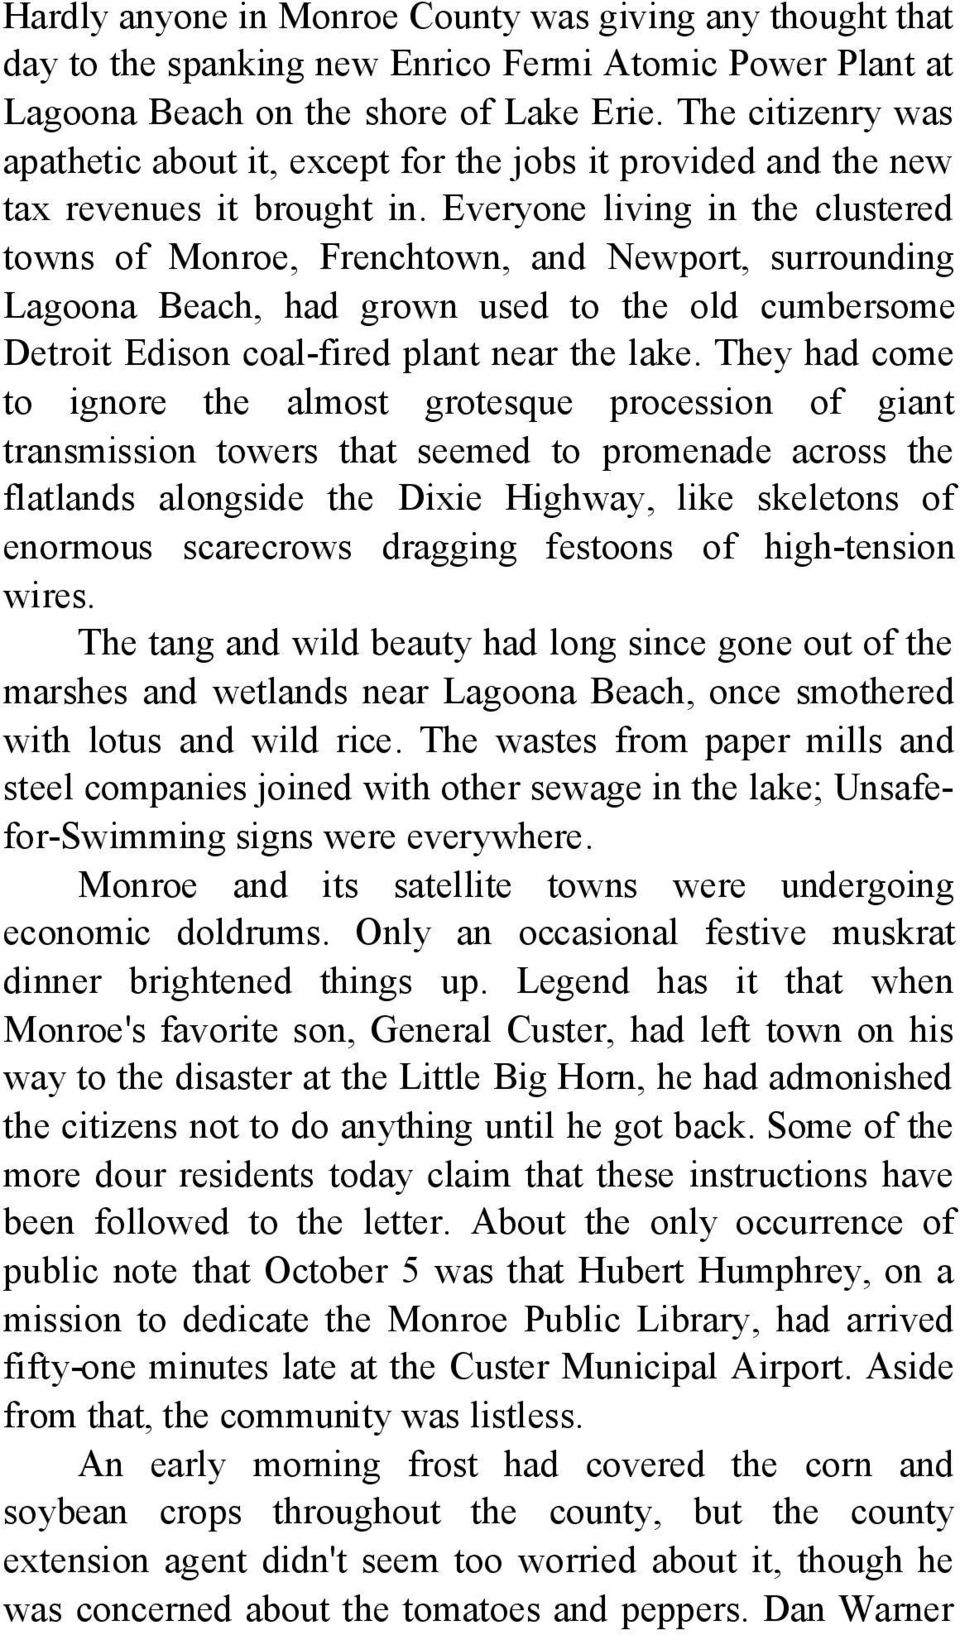 Everyone living in the clustered towns of Monroe, Frenchtown, and Newport, surrounding Lagoona Beach, had grown used to the old cumbersome Detroit Edison coal-fired plant near the lake.